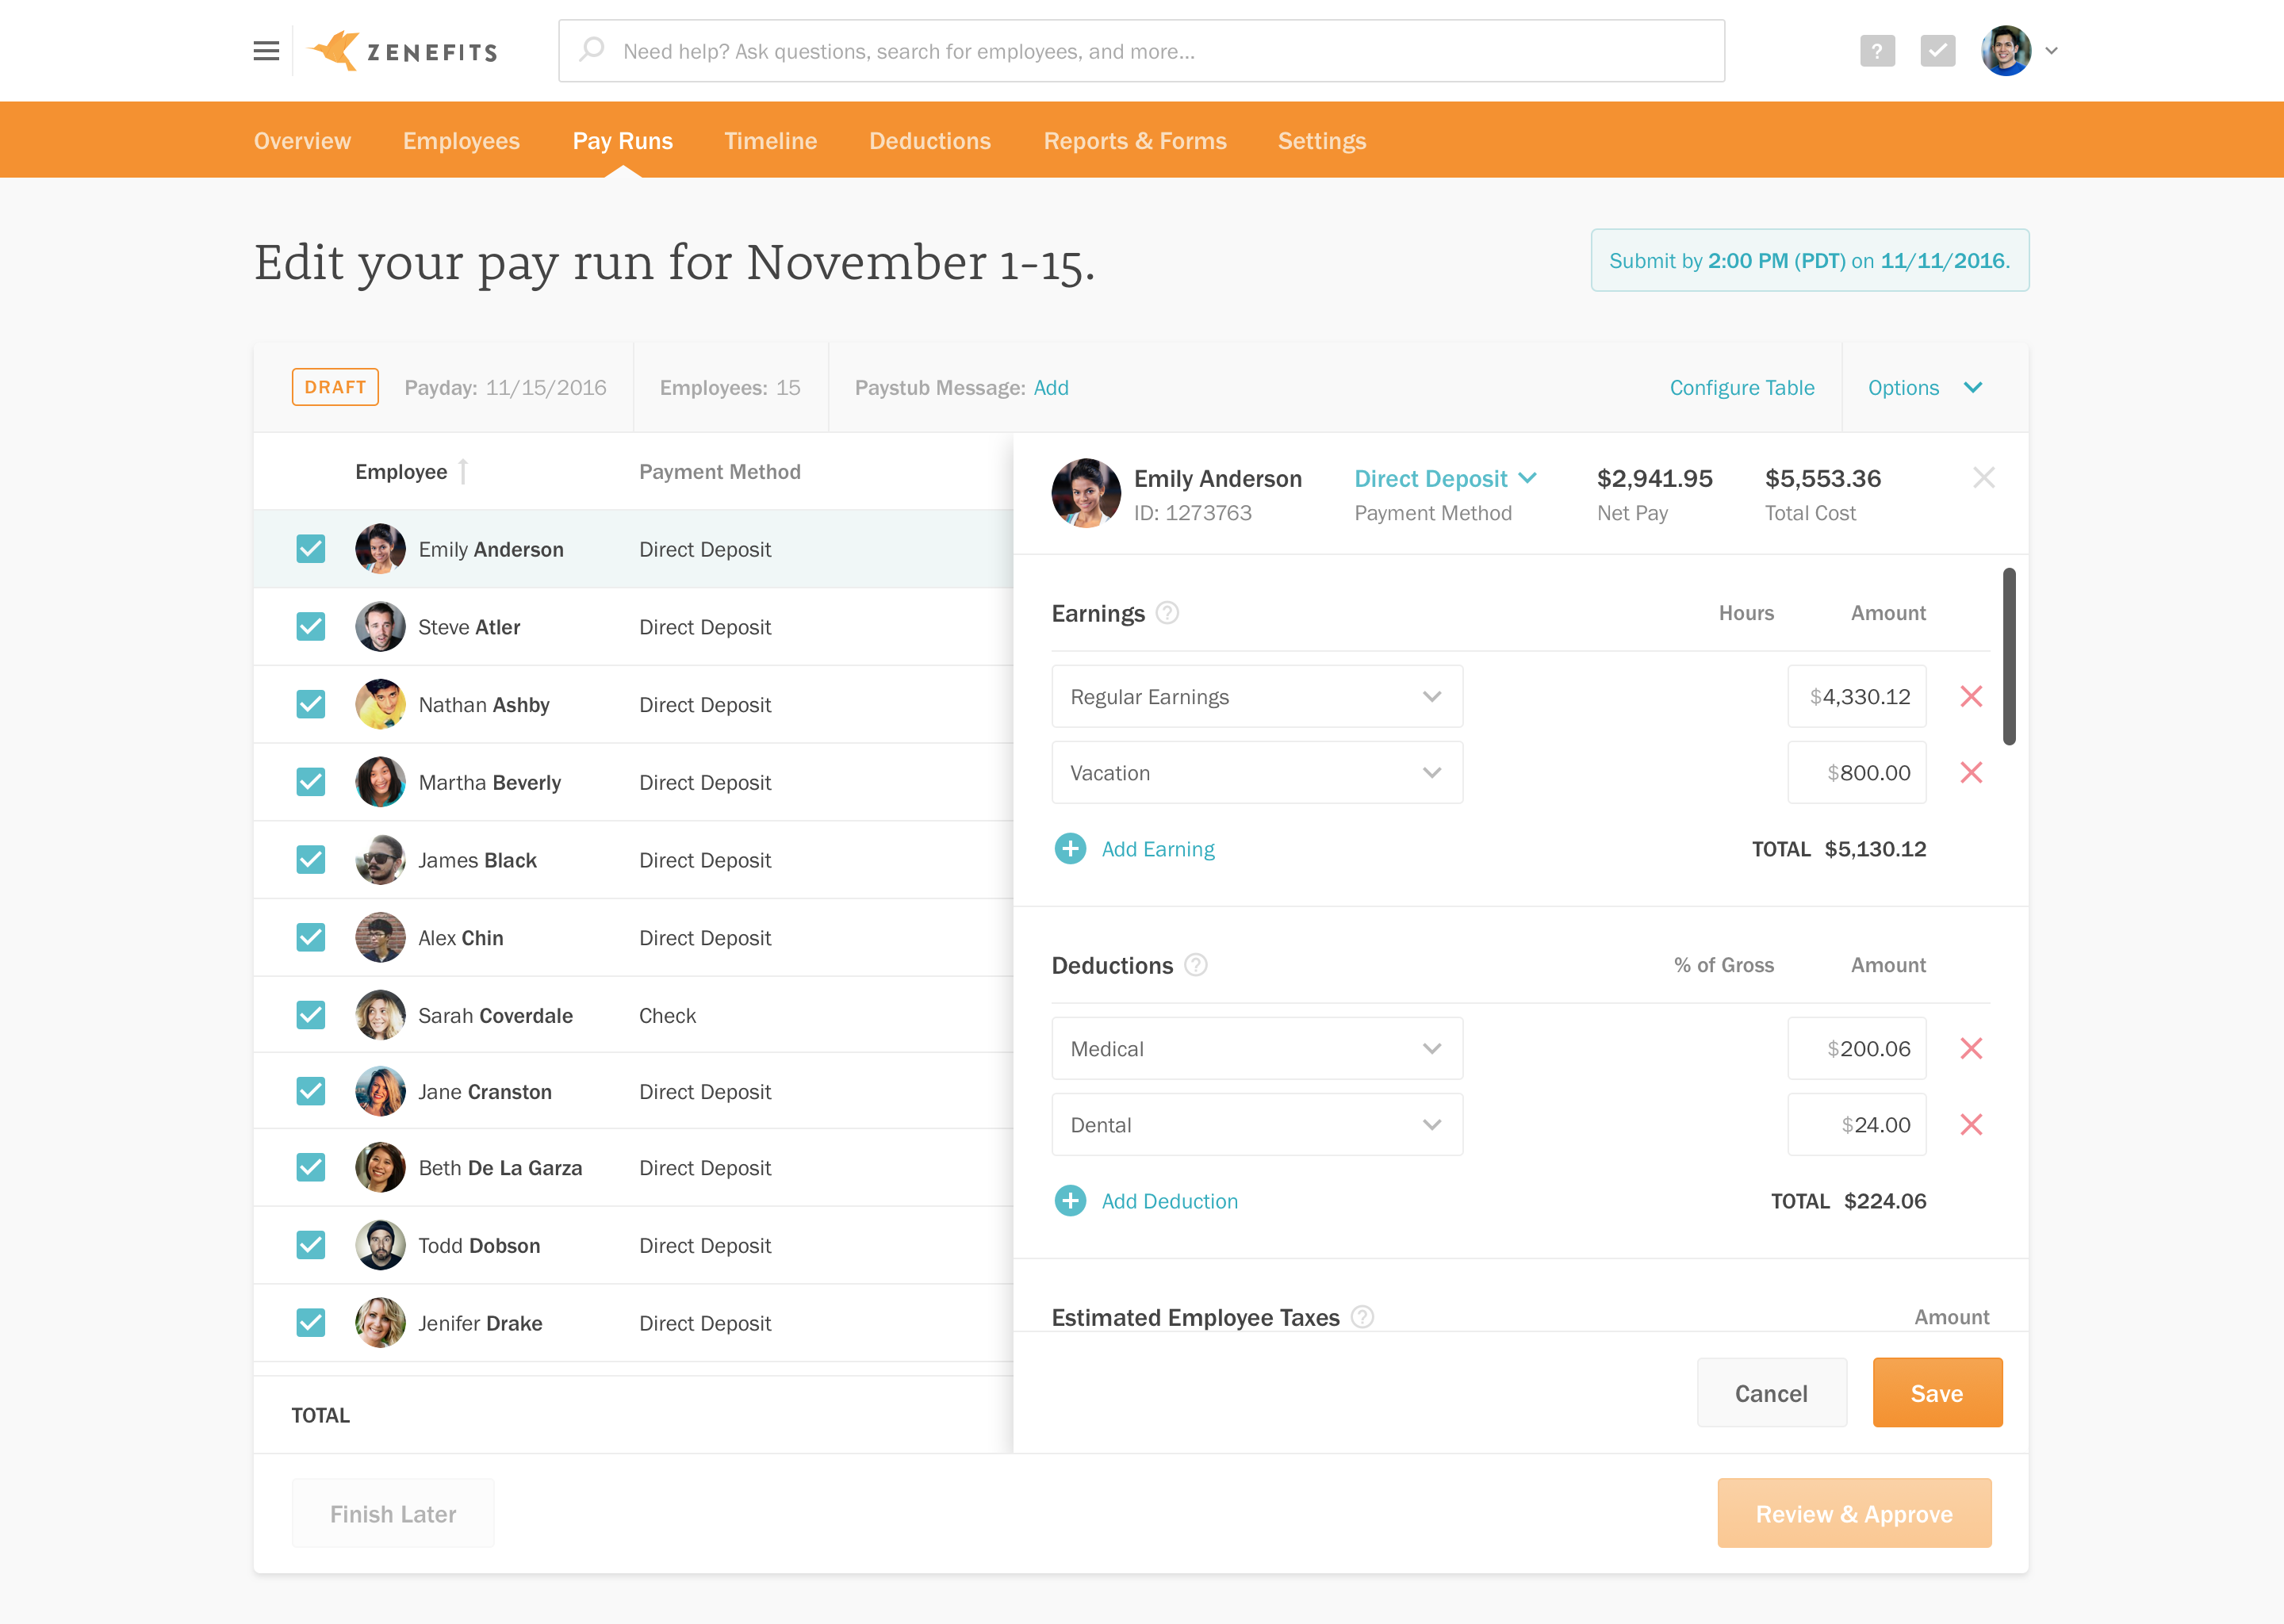 Payroll management in Zenefits